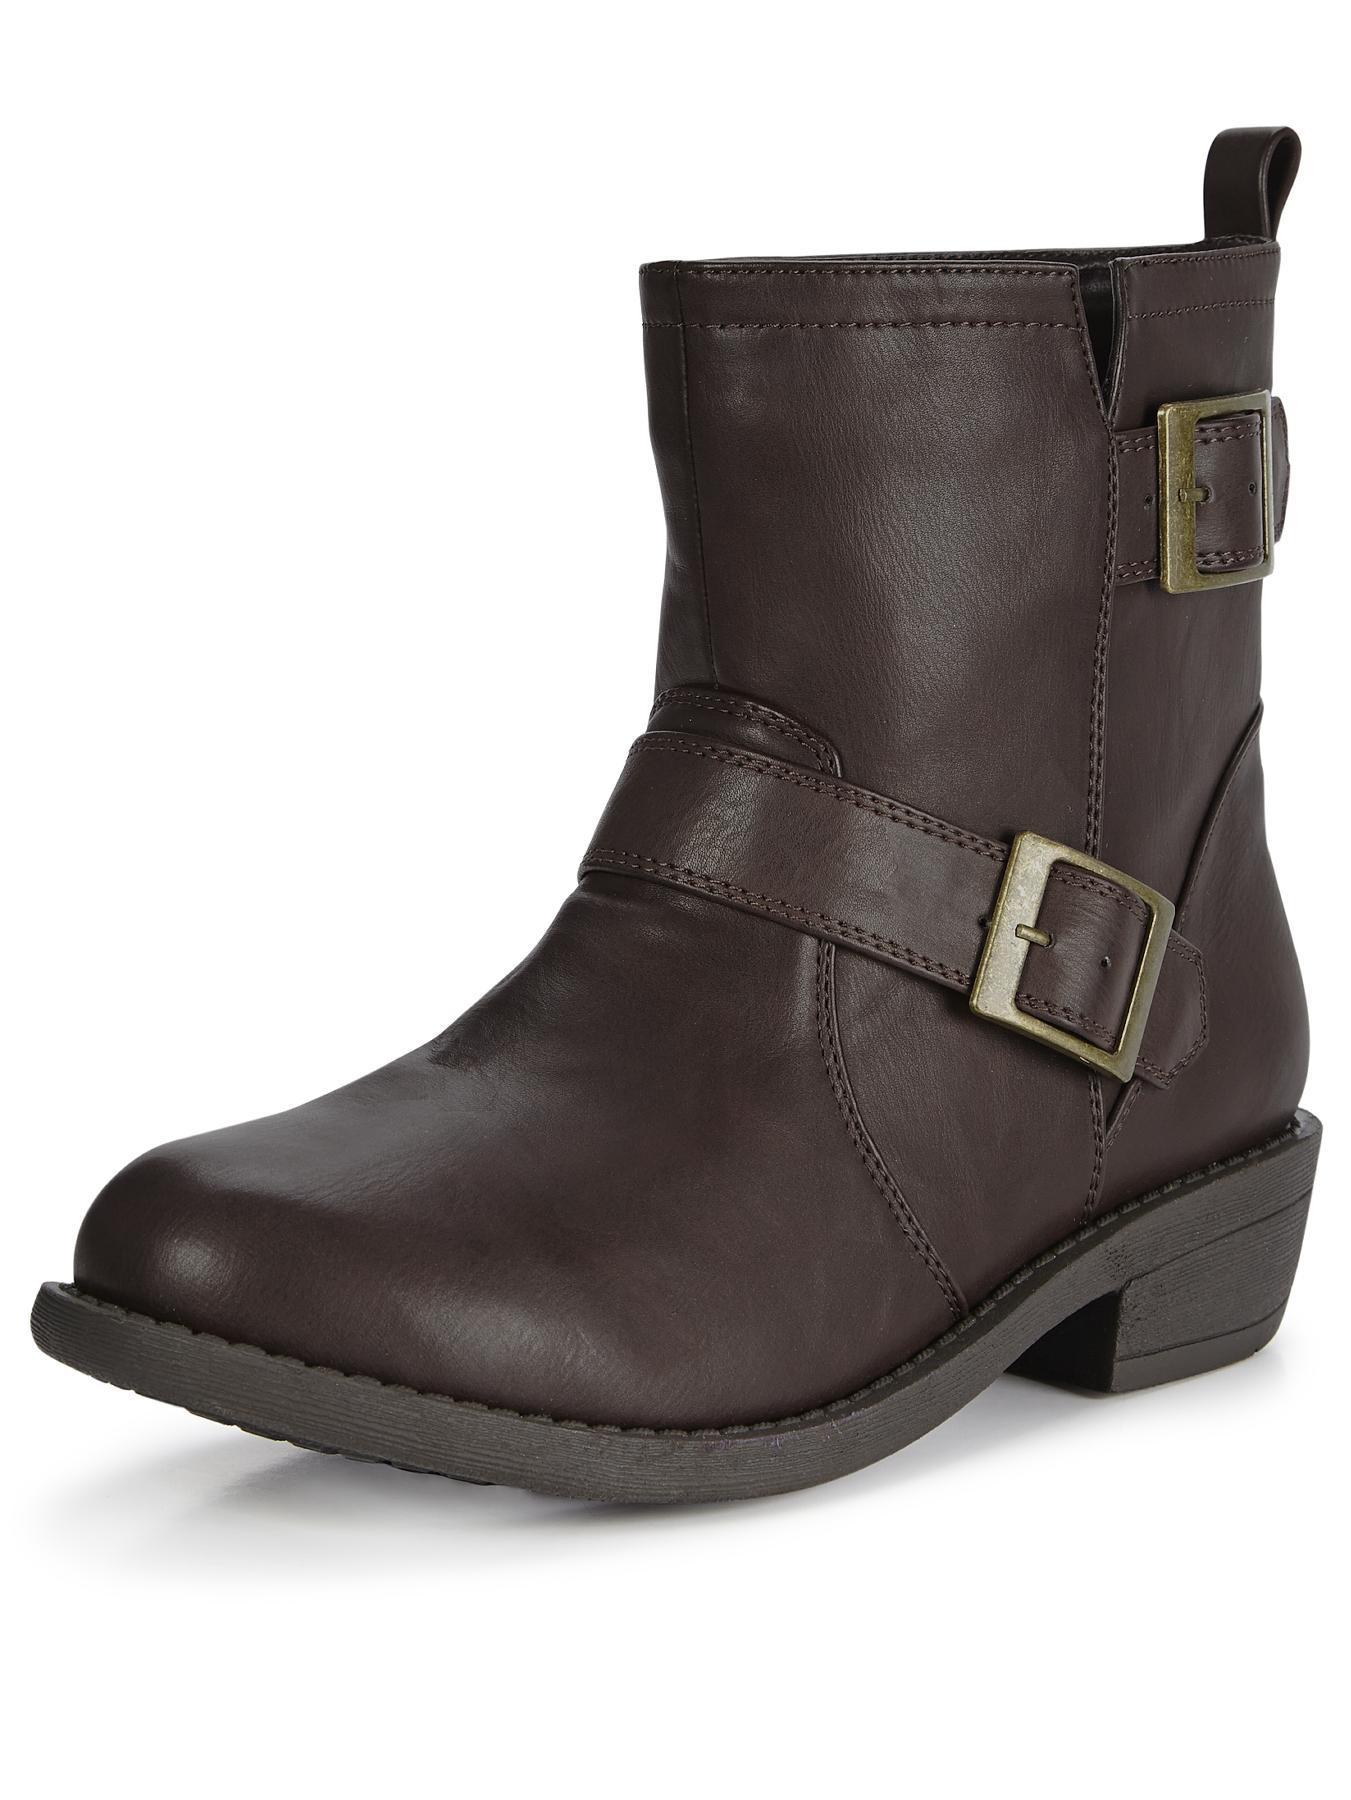 Shoe Box Allegra Buckle Detail Ankle Boots